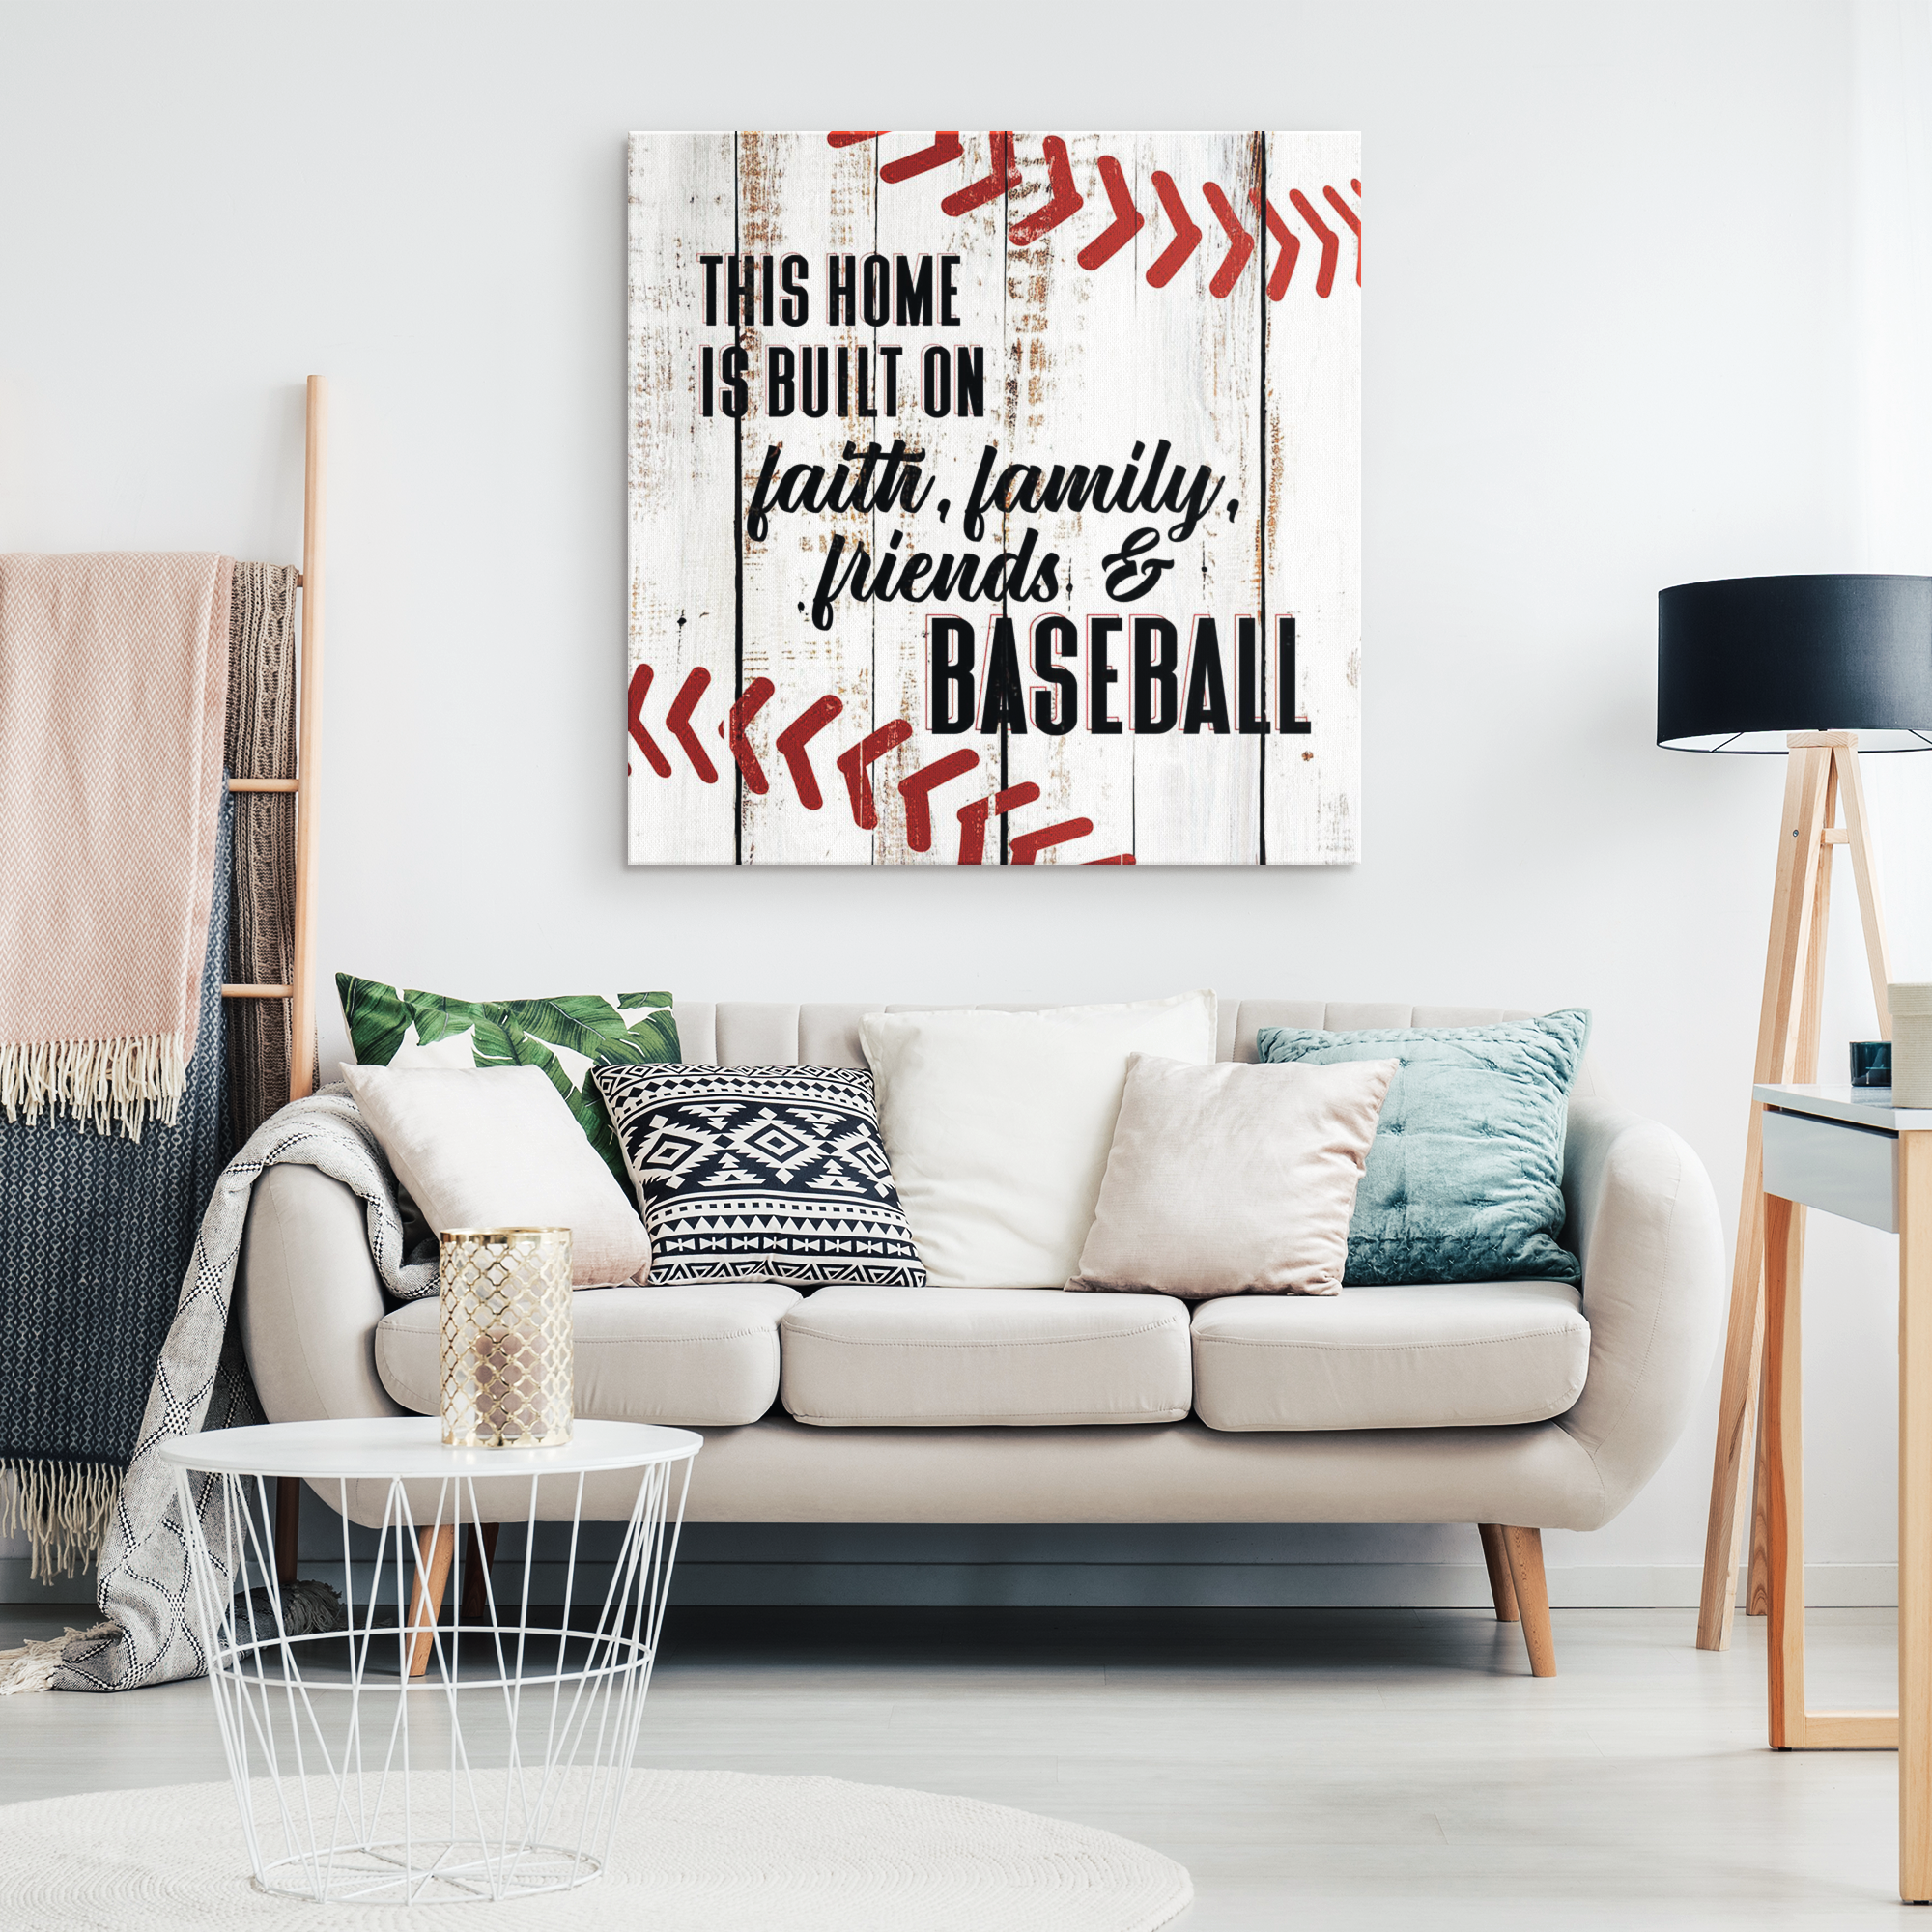 """Home Built On Faith Family, Friends & Baseball"" Premium Canvas"